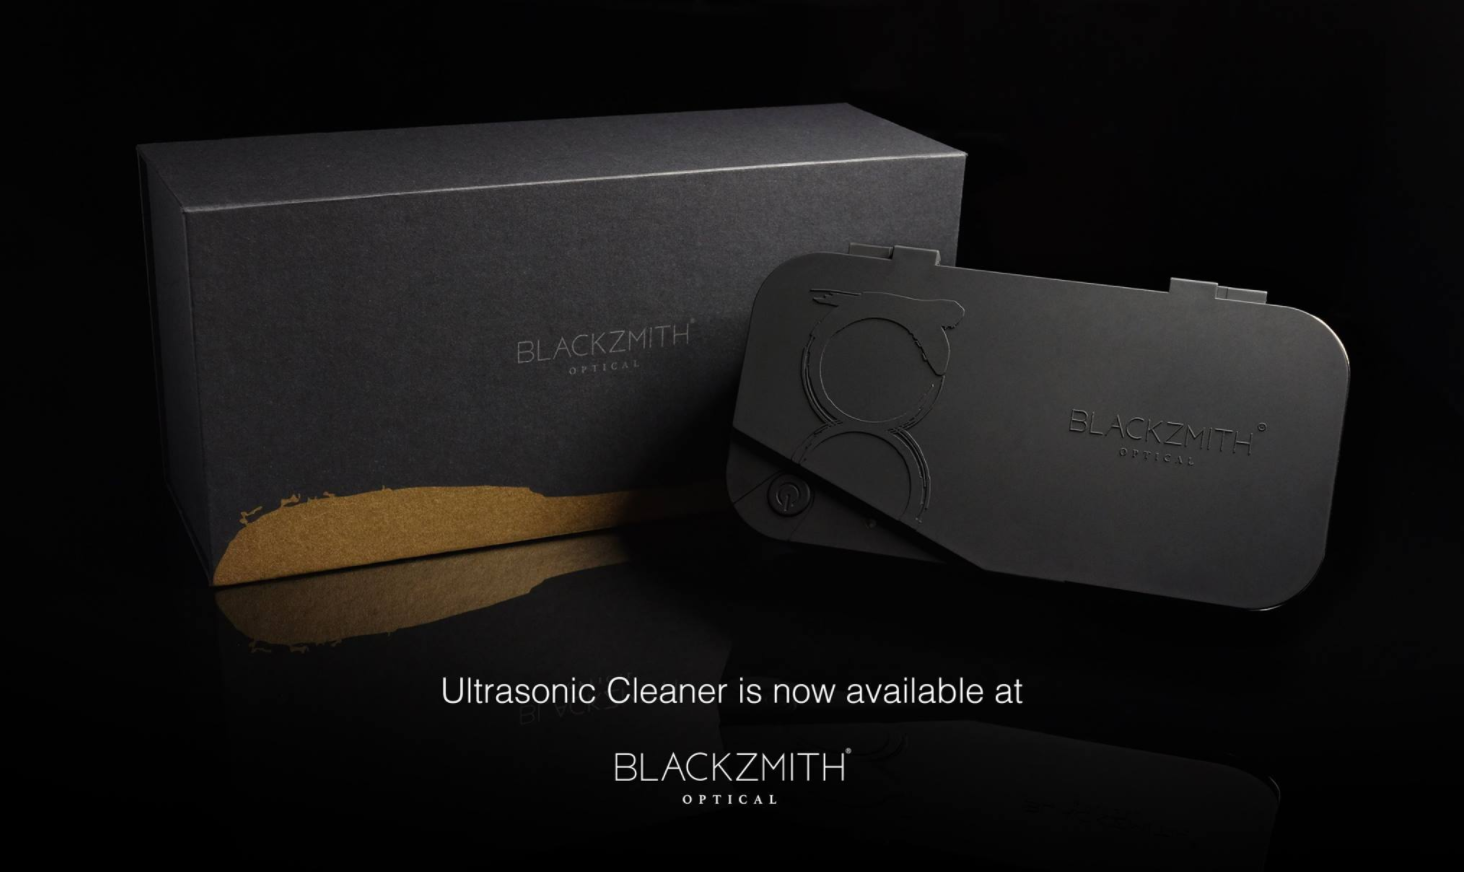 The BlackZmith Optical x Smartclean